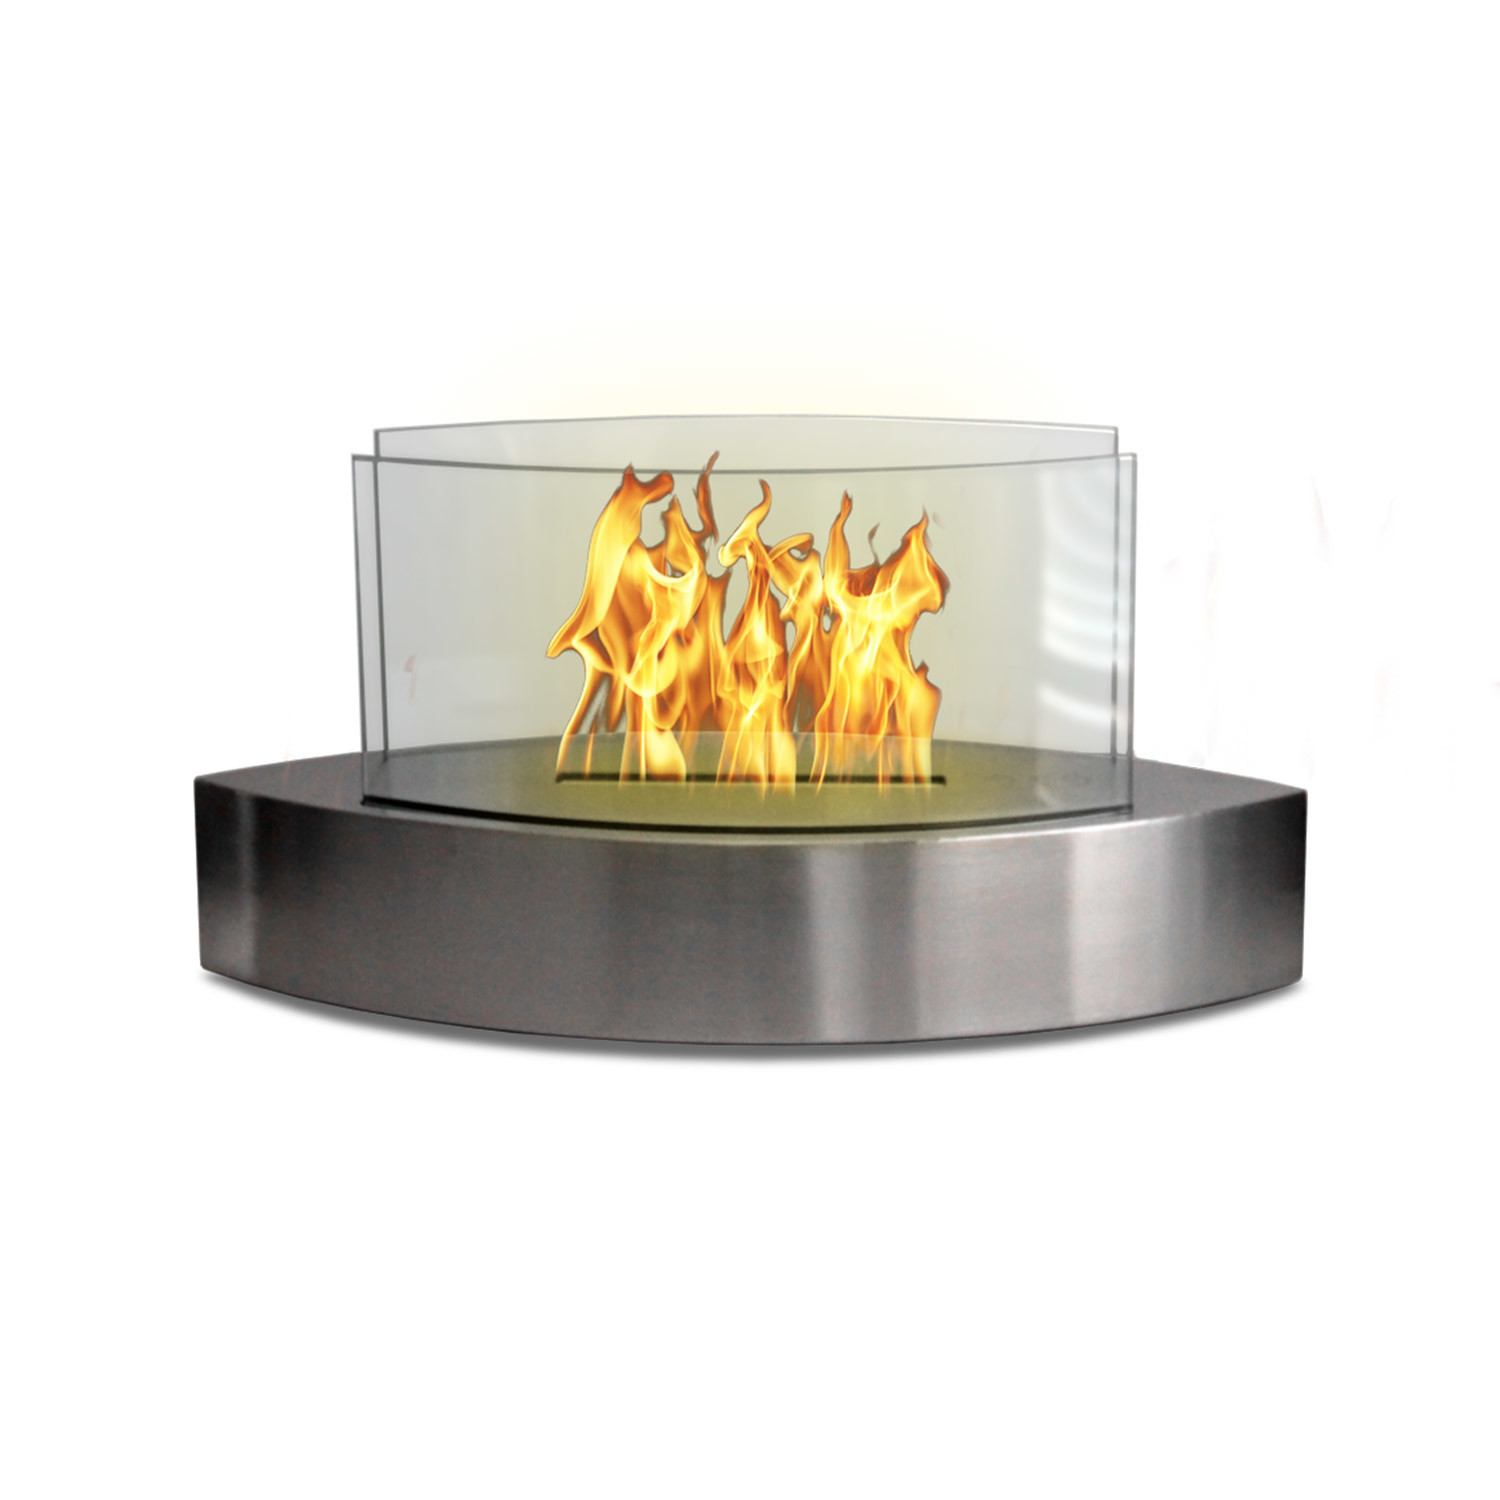 lexington stainless steel anywhere fireplace touch of modern